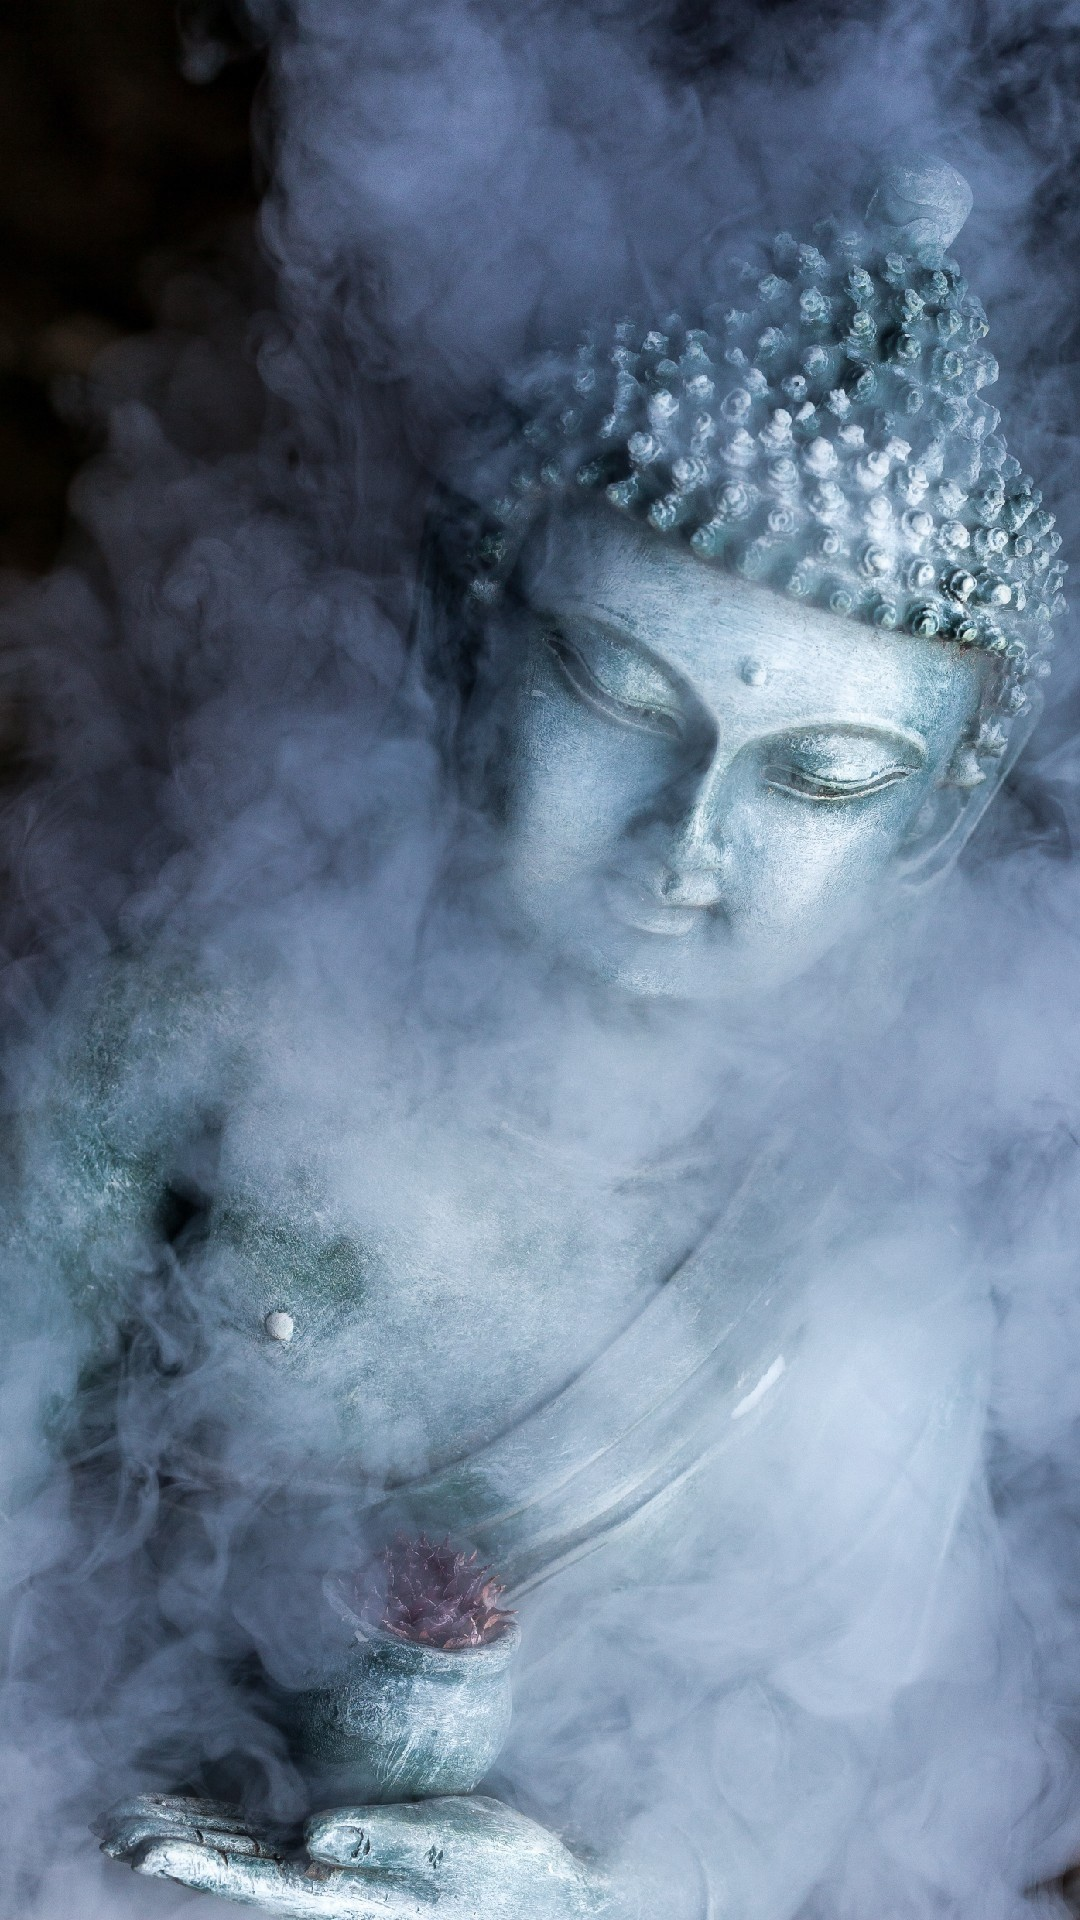 Res: 1080x1920, buddha-in-smoke-Background-Phone-Wallpaper-and Lockscreen-HD